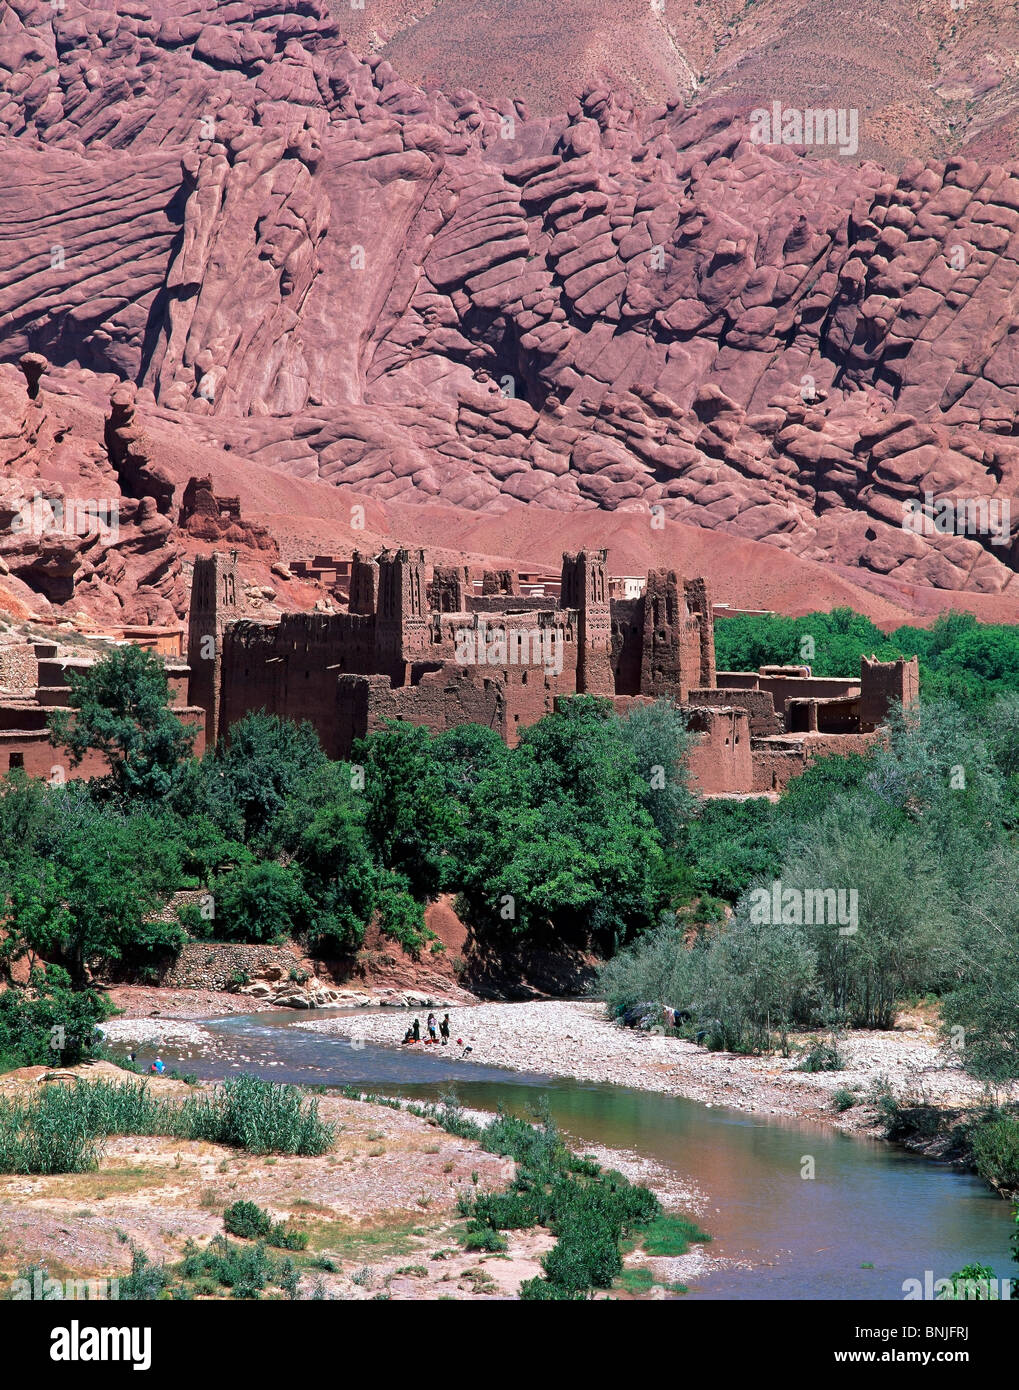 Morocco February 2007 Kasbah at Dades valley Atlas Mountains landscape city old town river - Stock Image